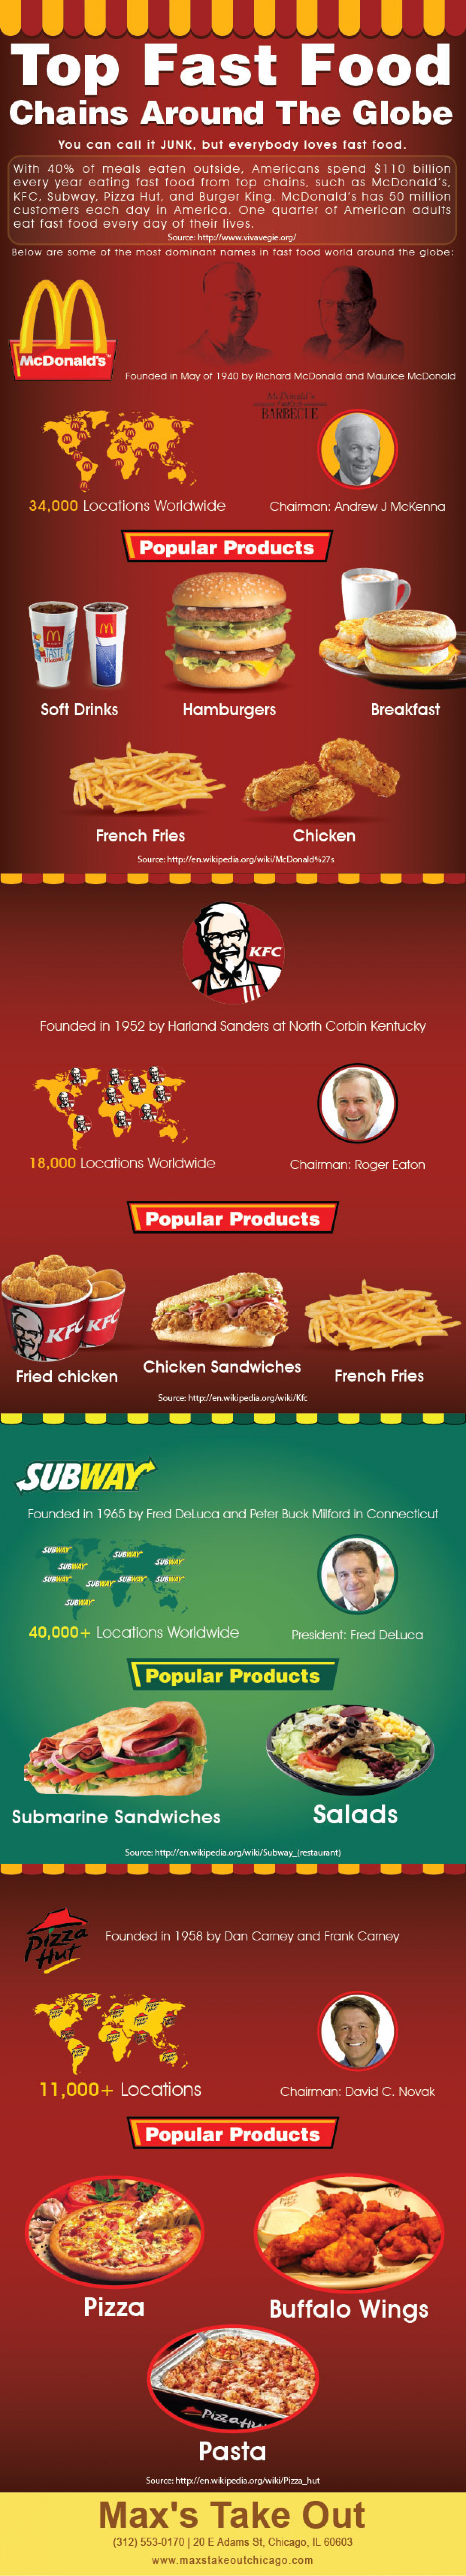 Top Fast Food Chains Around The Globe Infographic